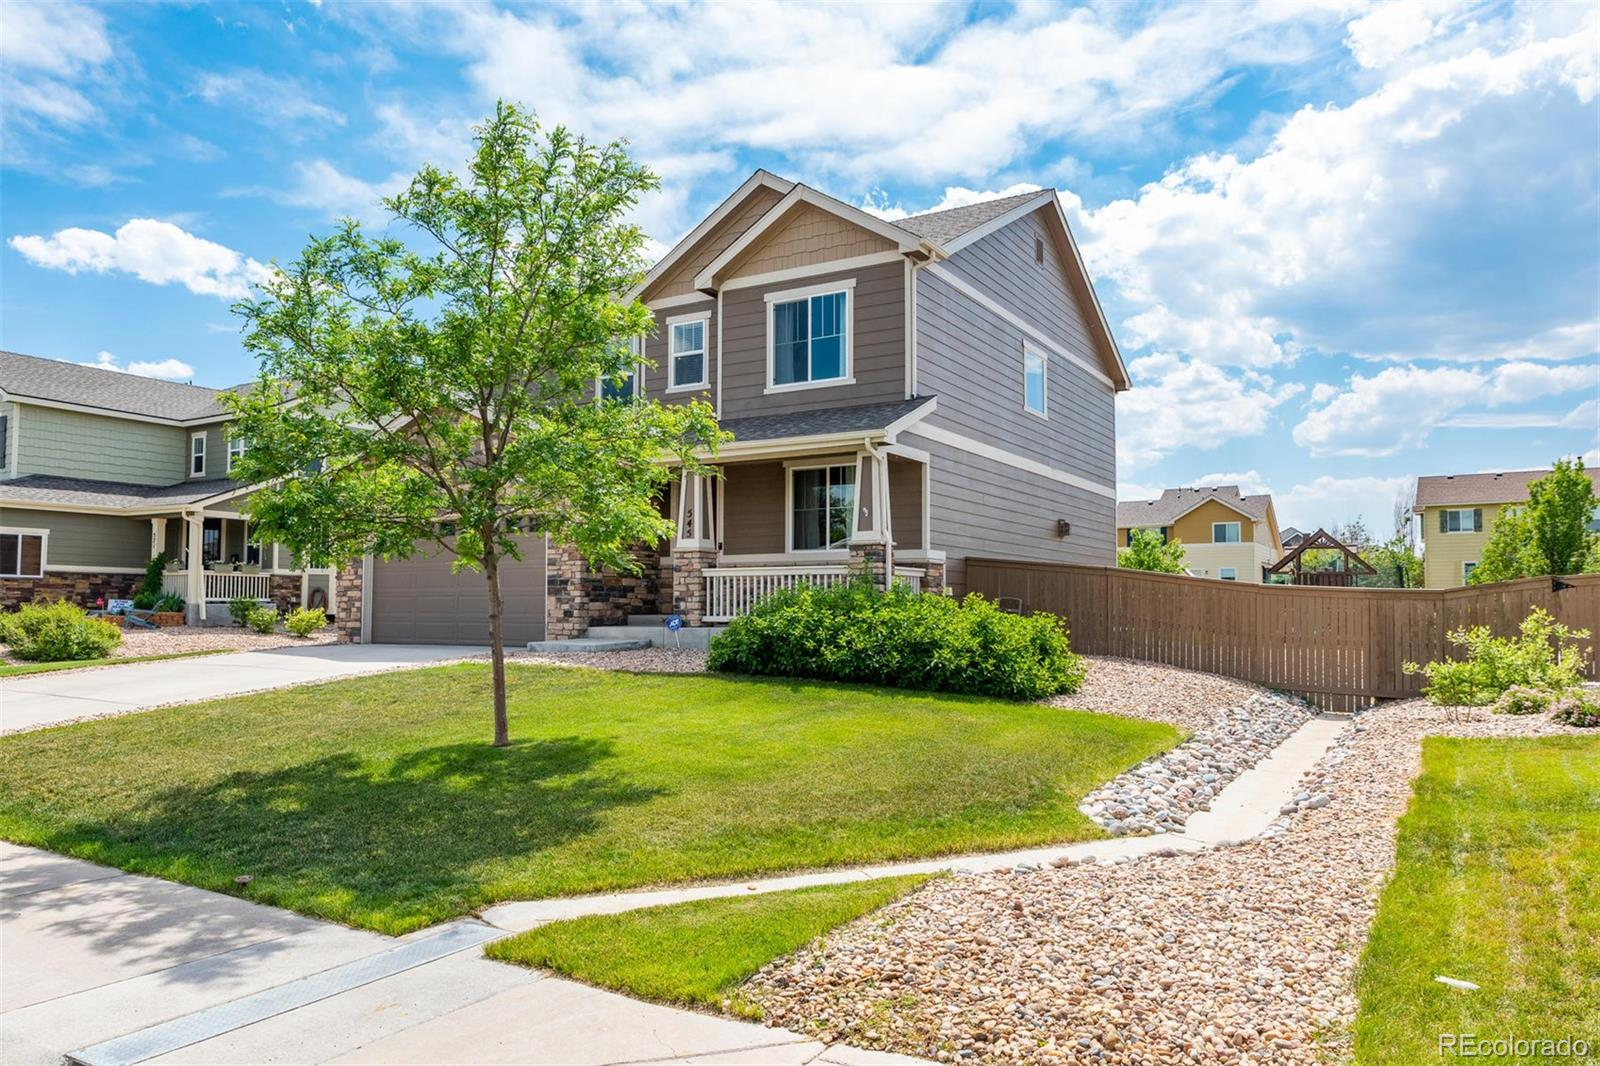 MLS# 1721440 - 36 - 545 Sudbury Street, Castle Rock, CO 80104